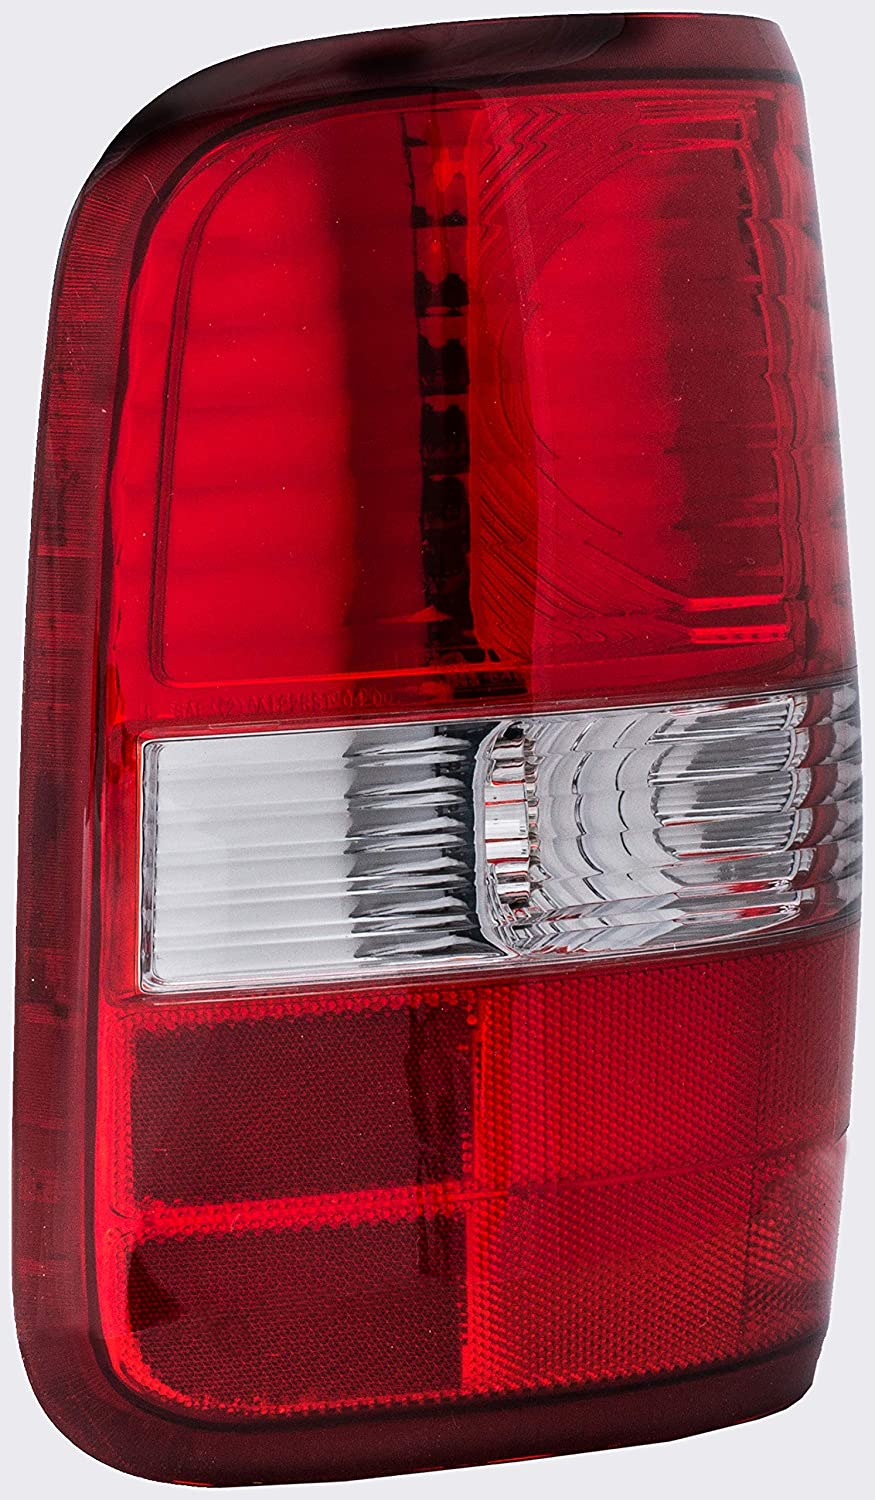 Dorman 1590326 Driver Side Tail Light Assembly for Select Ford//Lincoln Models